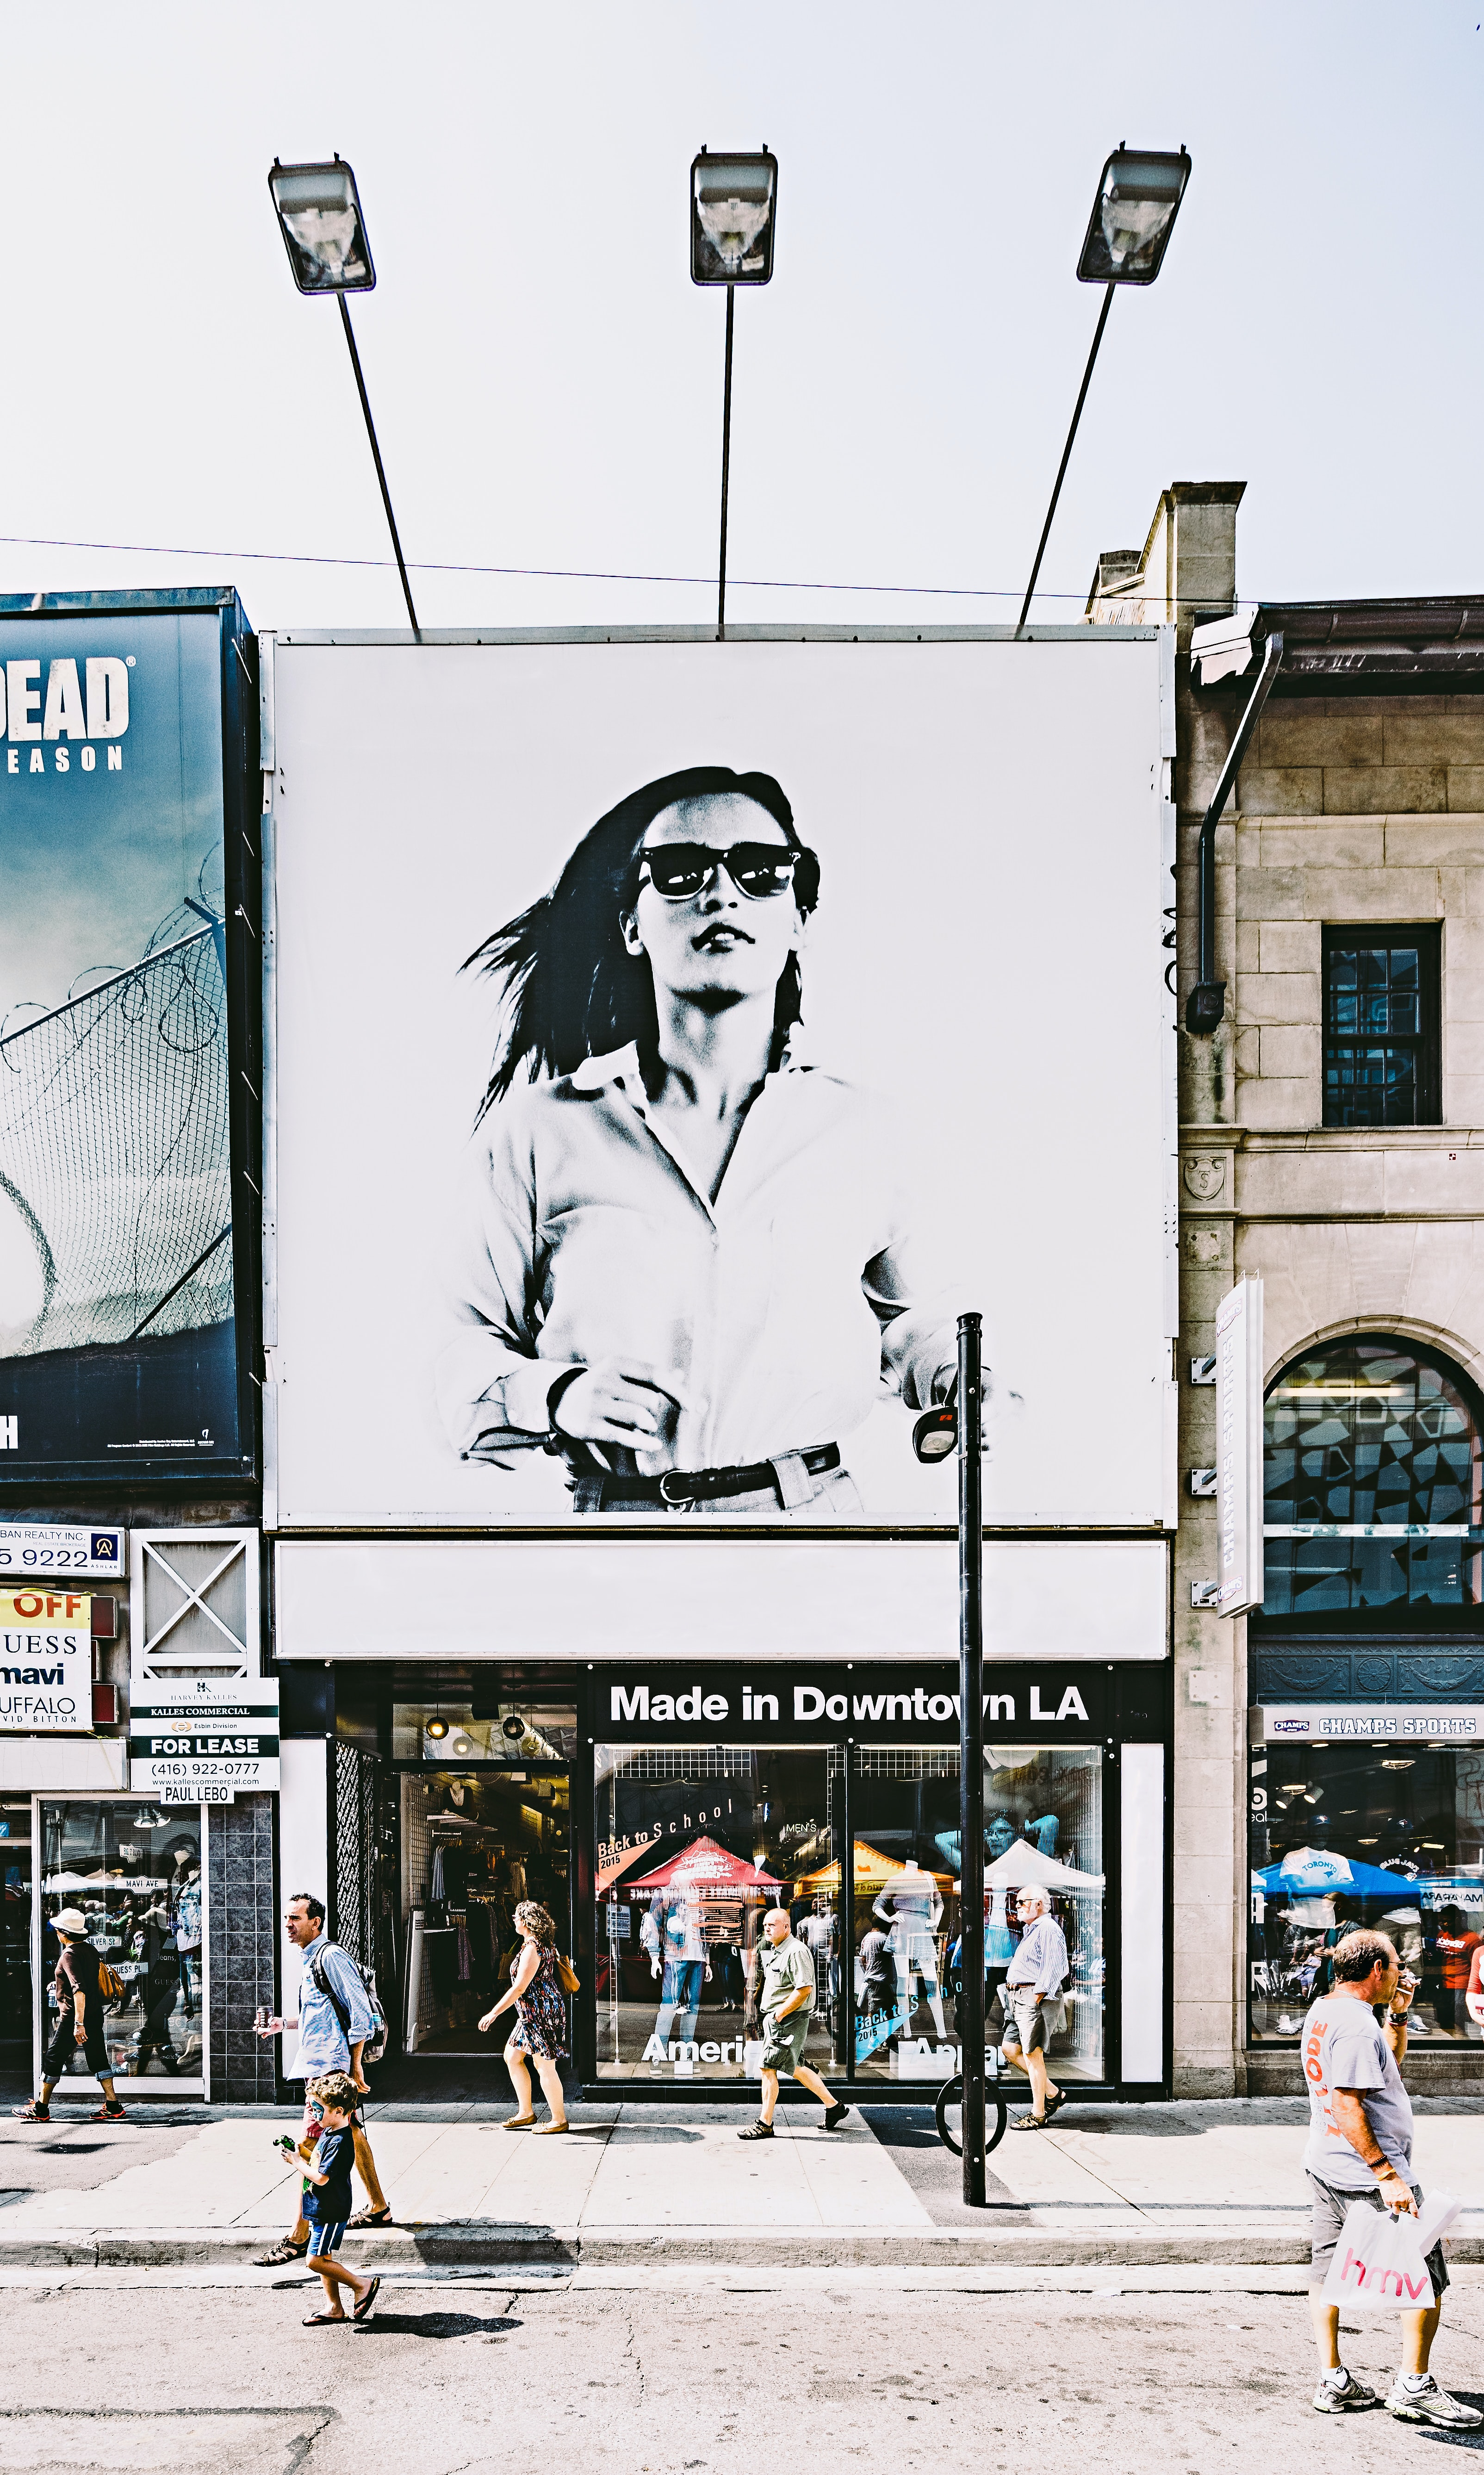 A large advertisement with an elegant woman in sunglasses over a storefront